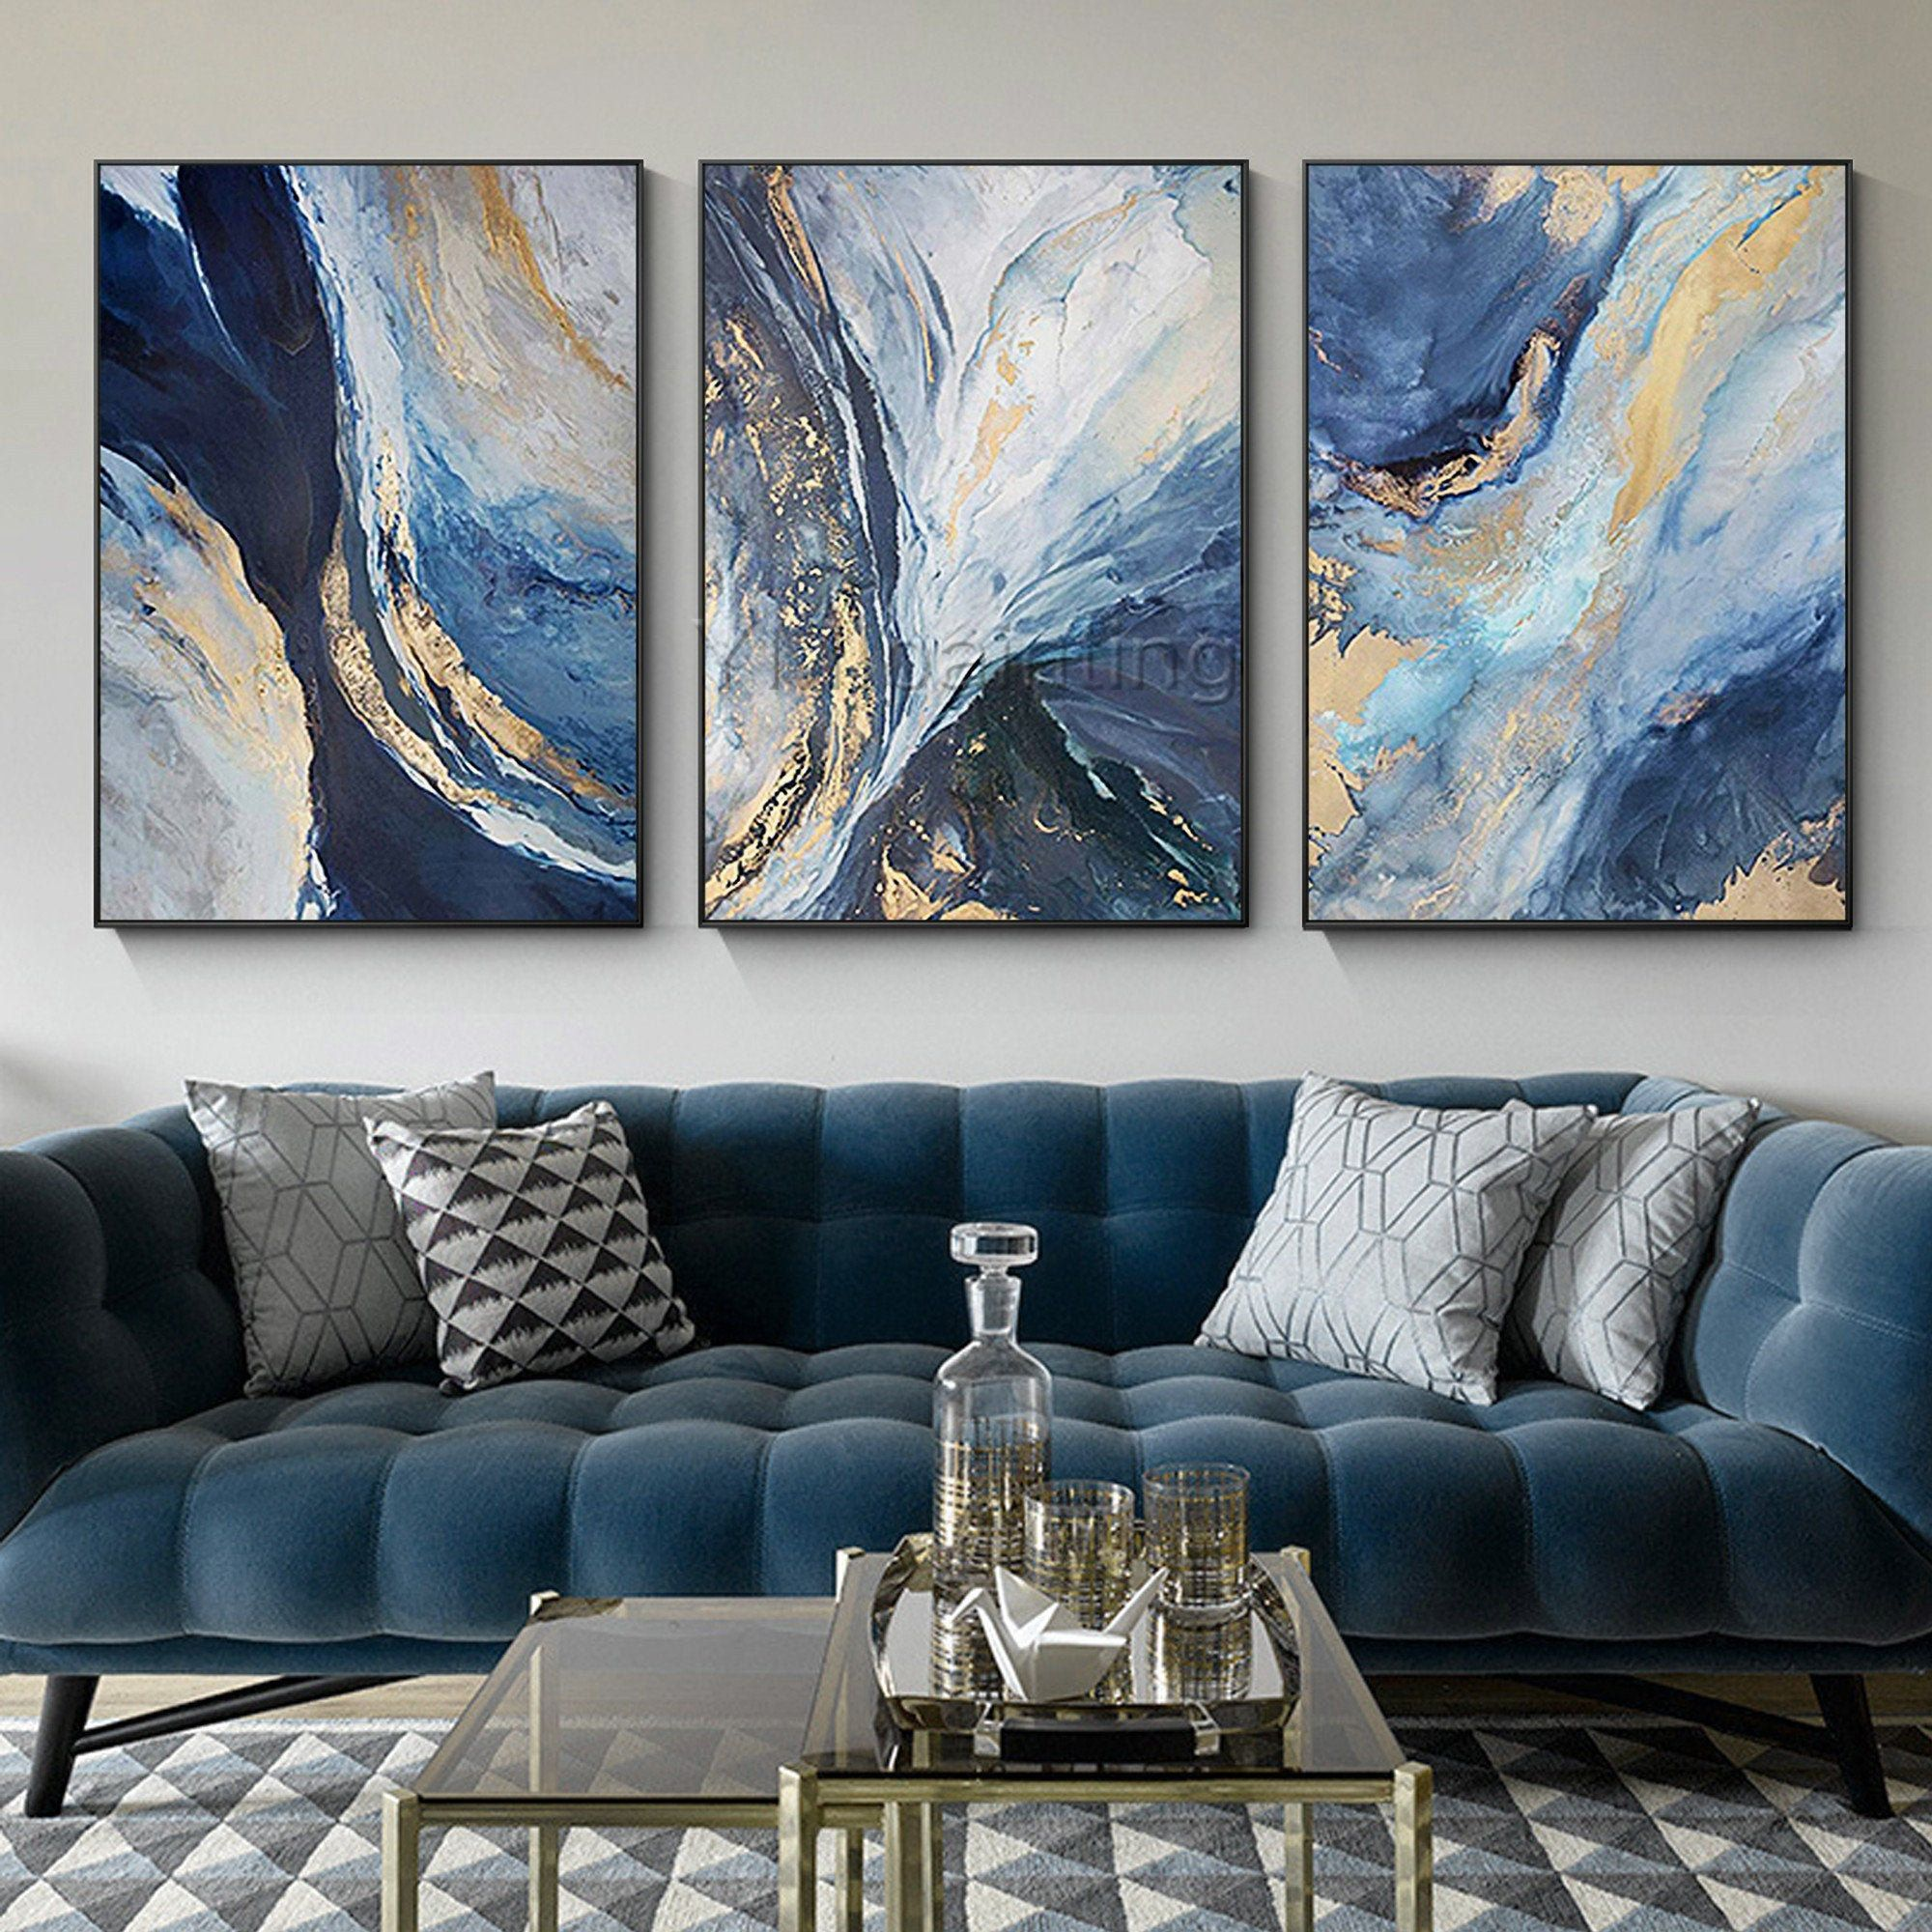 Framed Wall Art 3 Pieces Wall Art Gold Painting Ocean Navy Blue Art Abstract Acrylic Paint In 2021 Abstract Wall Art Living Room Blue Living Room Decor Living Room Art